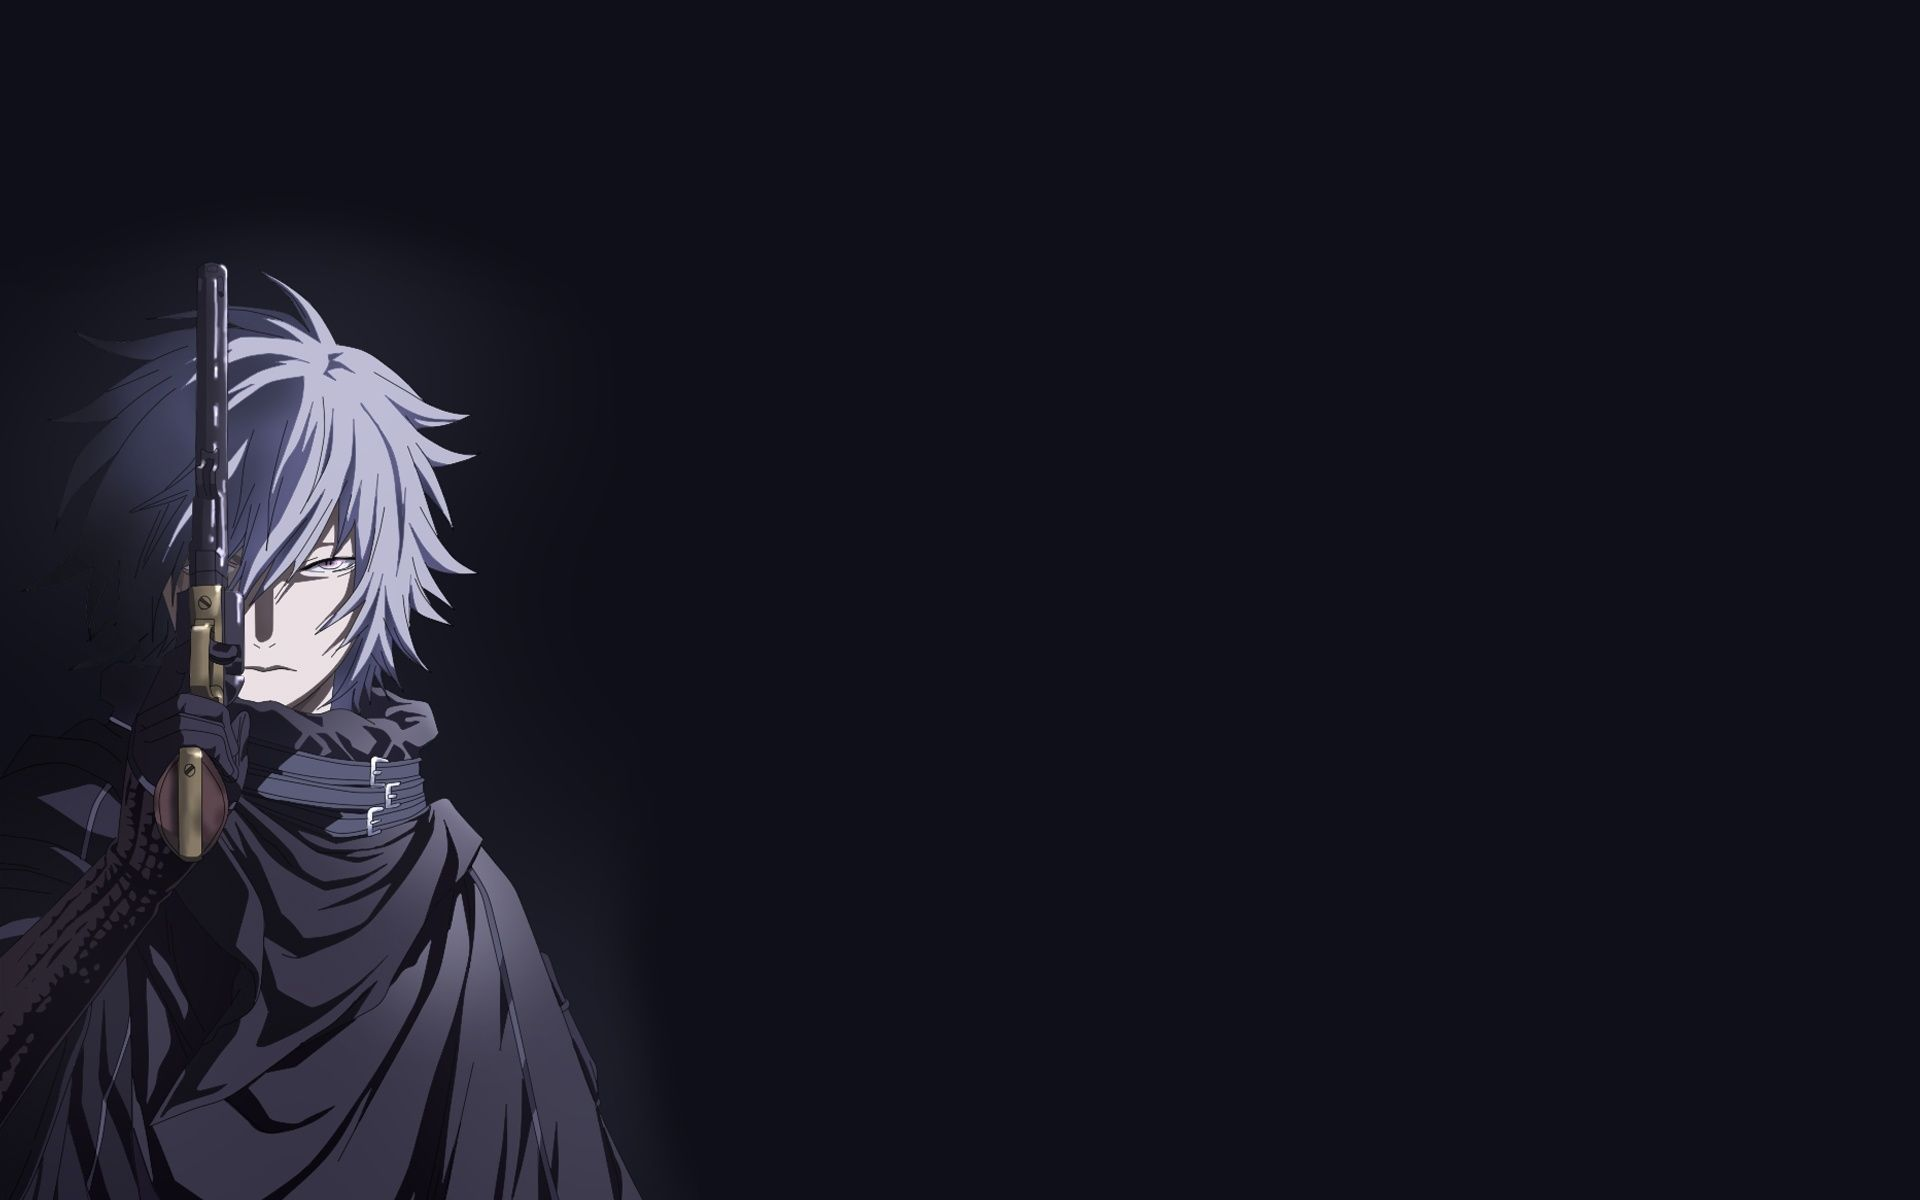 Fotos Dark Anime Wallpaper Hd Wallpapers Dark Anime Wallpaper